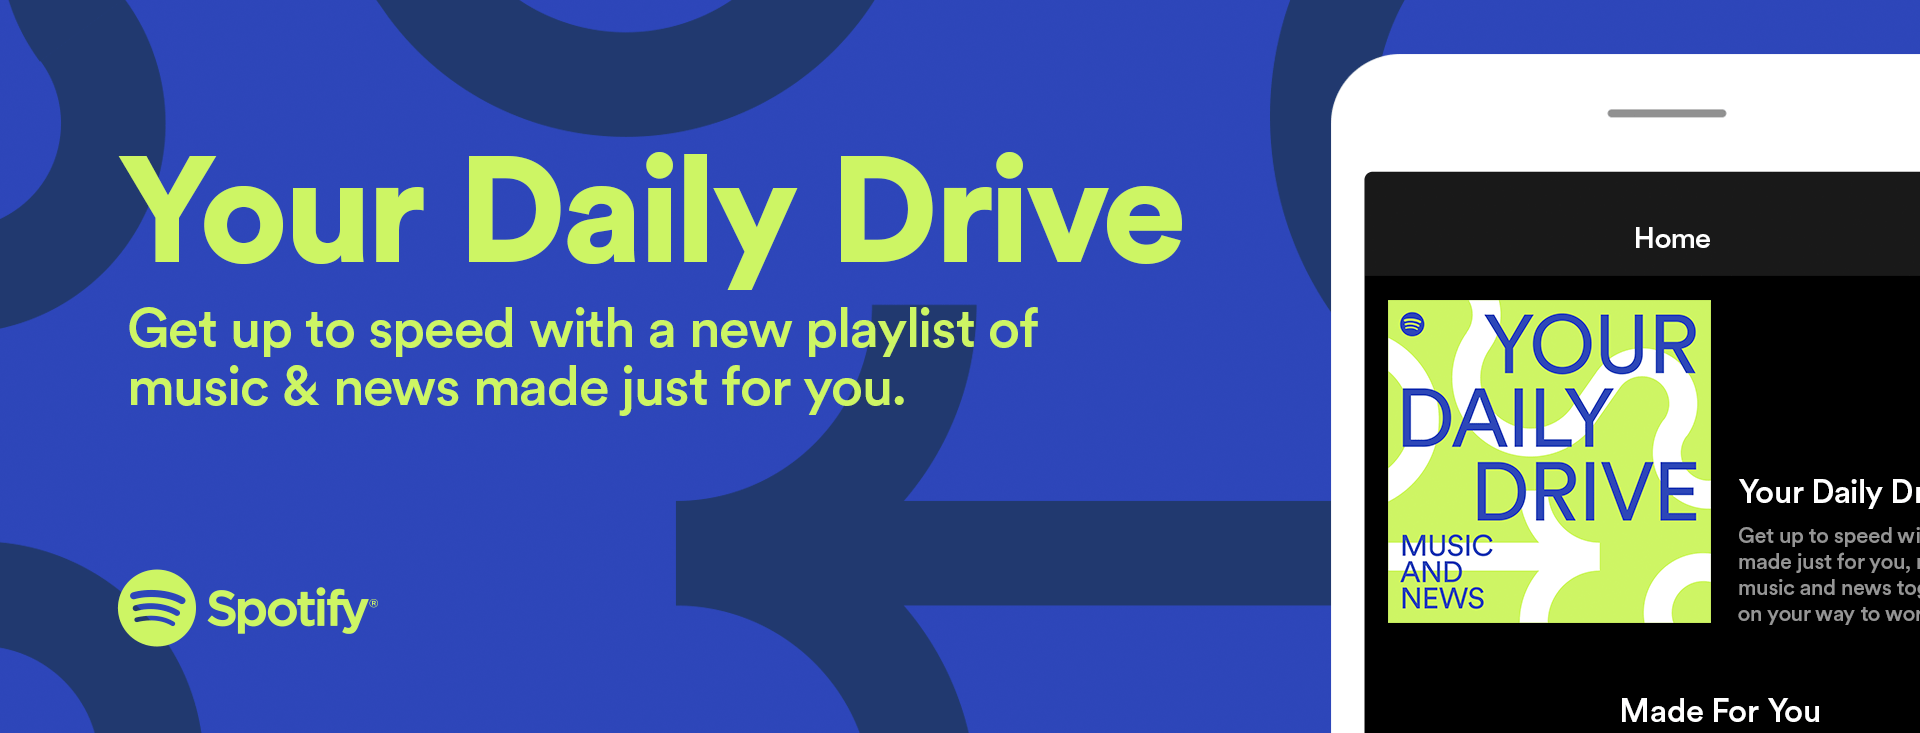 Your Daily Drive: Music and News That'll Brighten Your Commute — Spotify